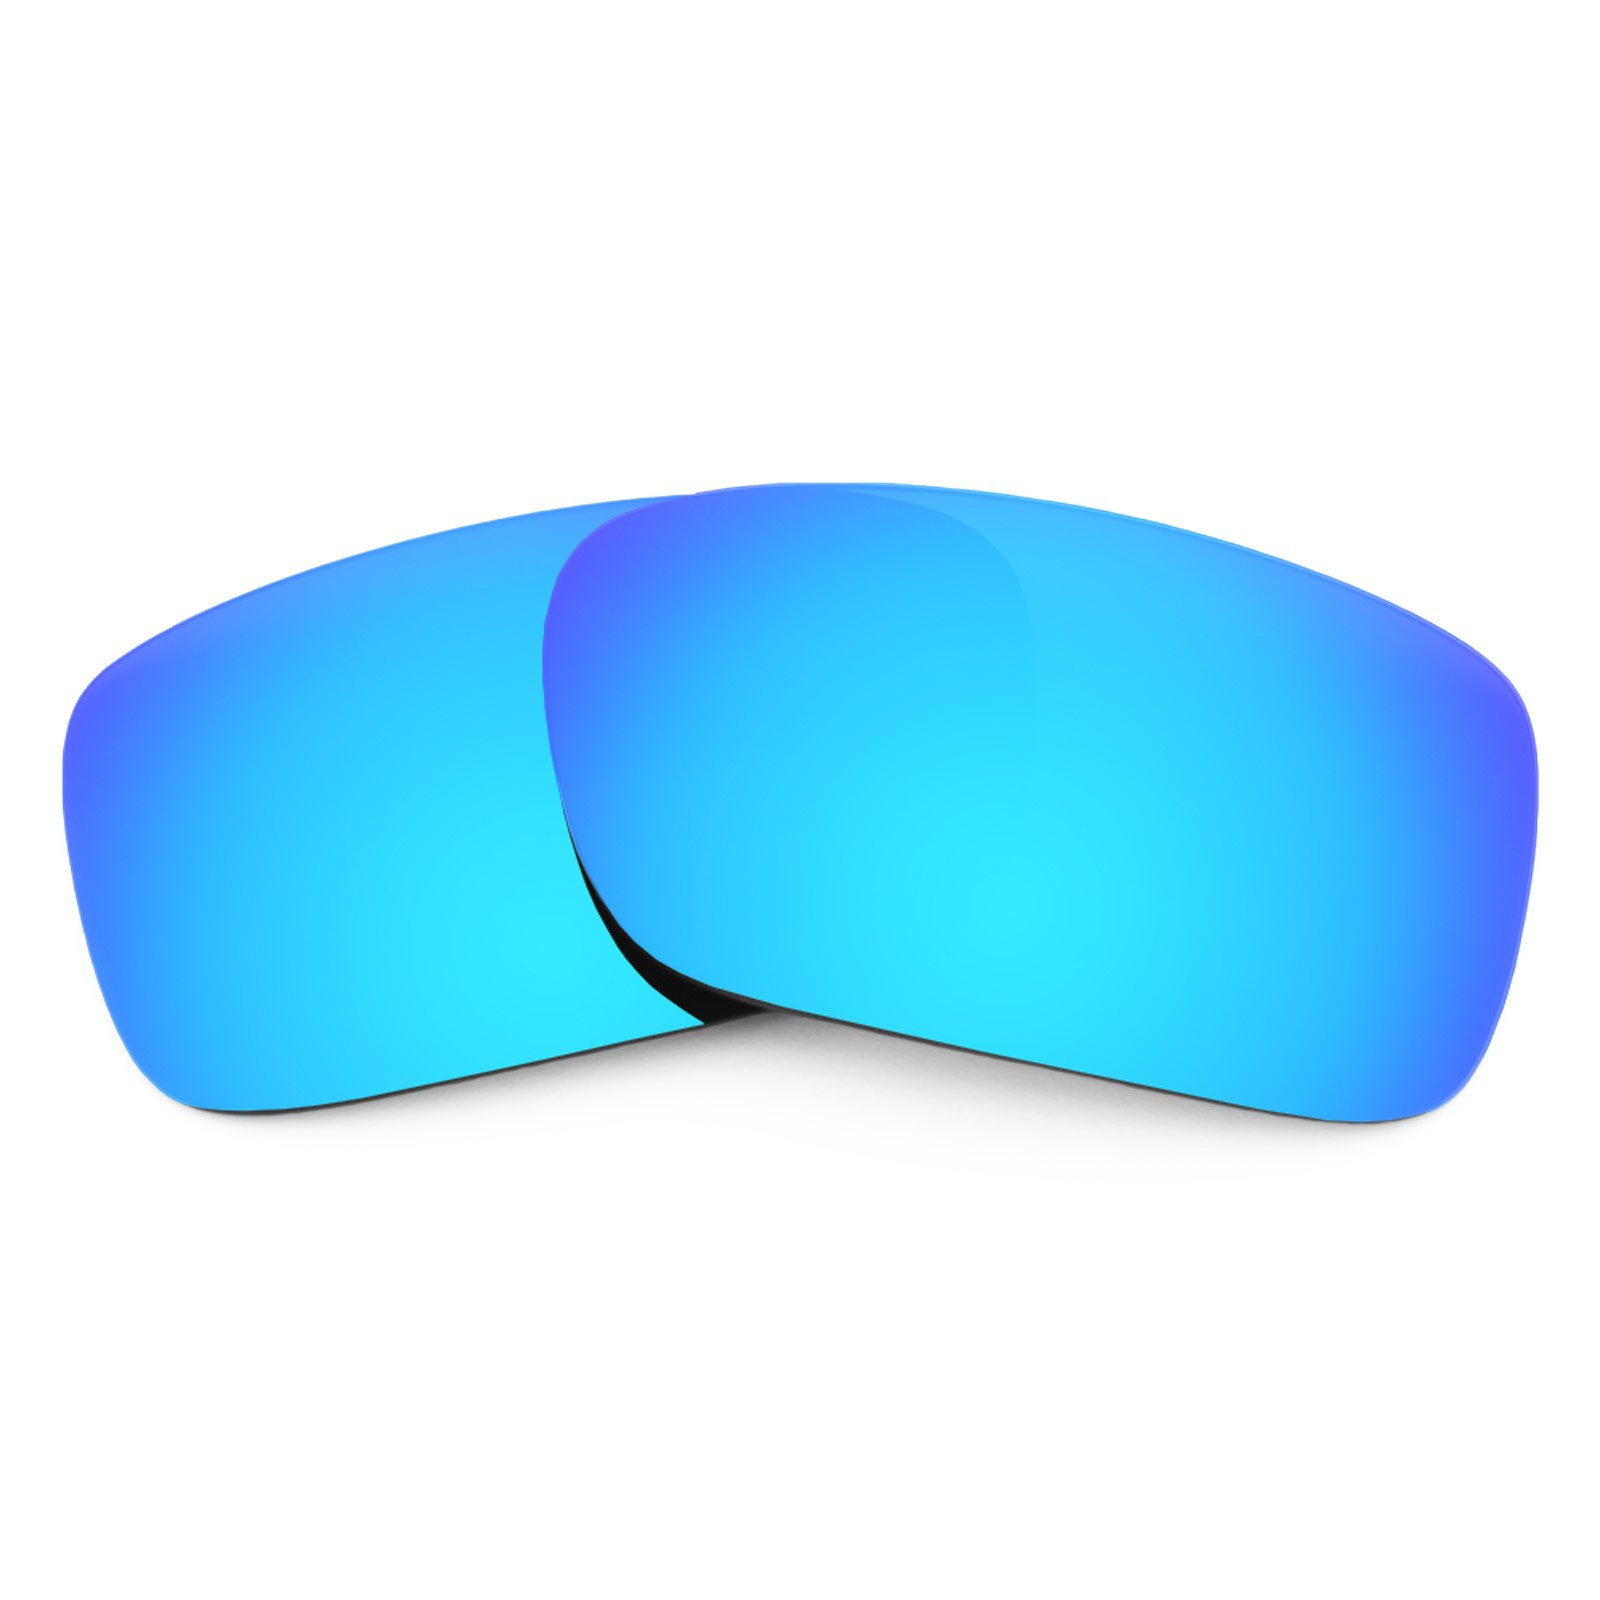 Revant Polarized Replacement Lenses for Oakley Crankcase Ice Blue MirrorShield